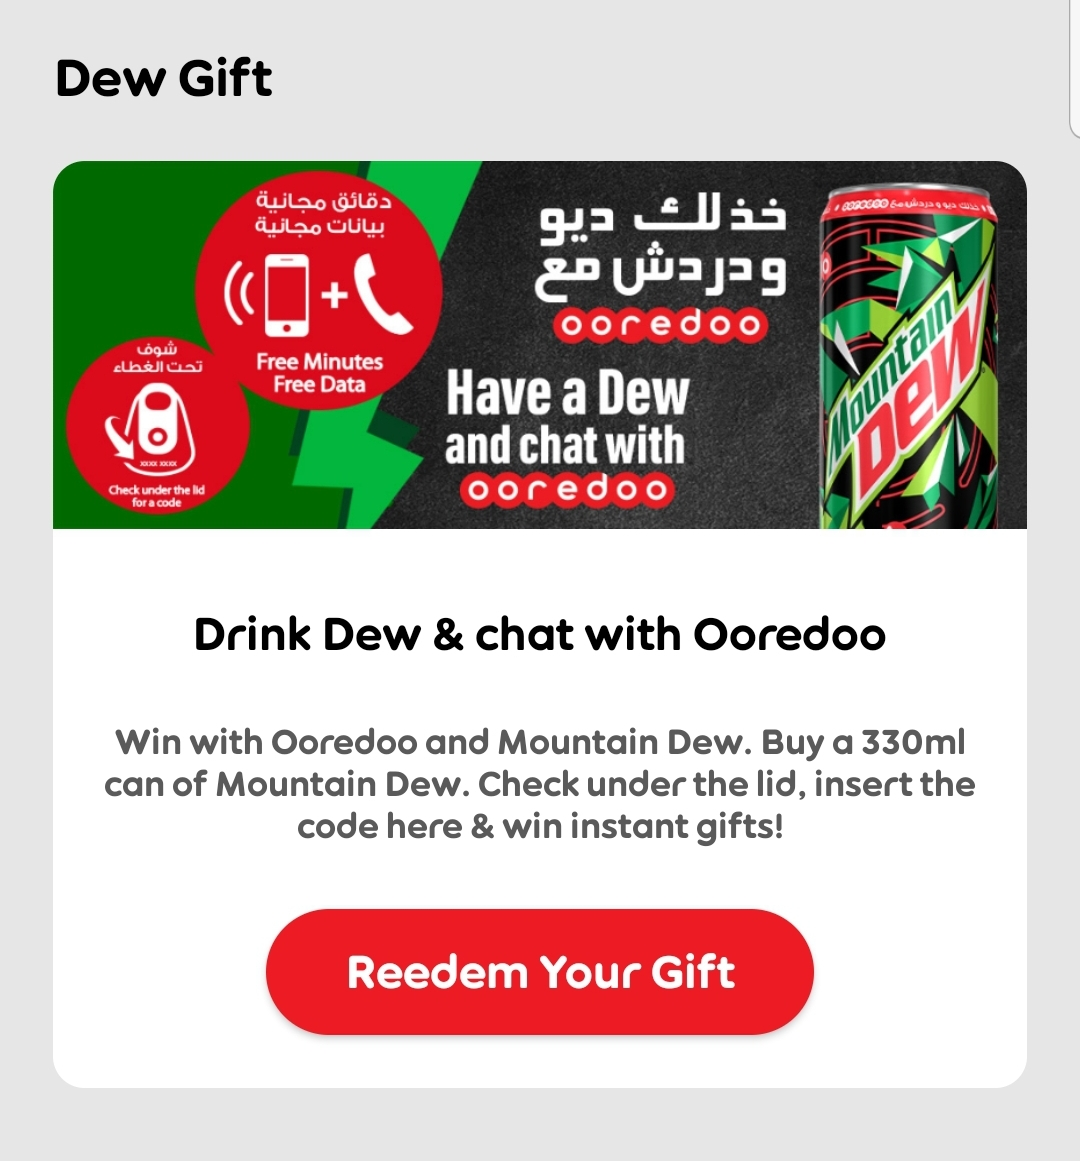 Ooredoo and Mountain Dew - Have a Mountain Dew and chat with Ooredoo by createsyou